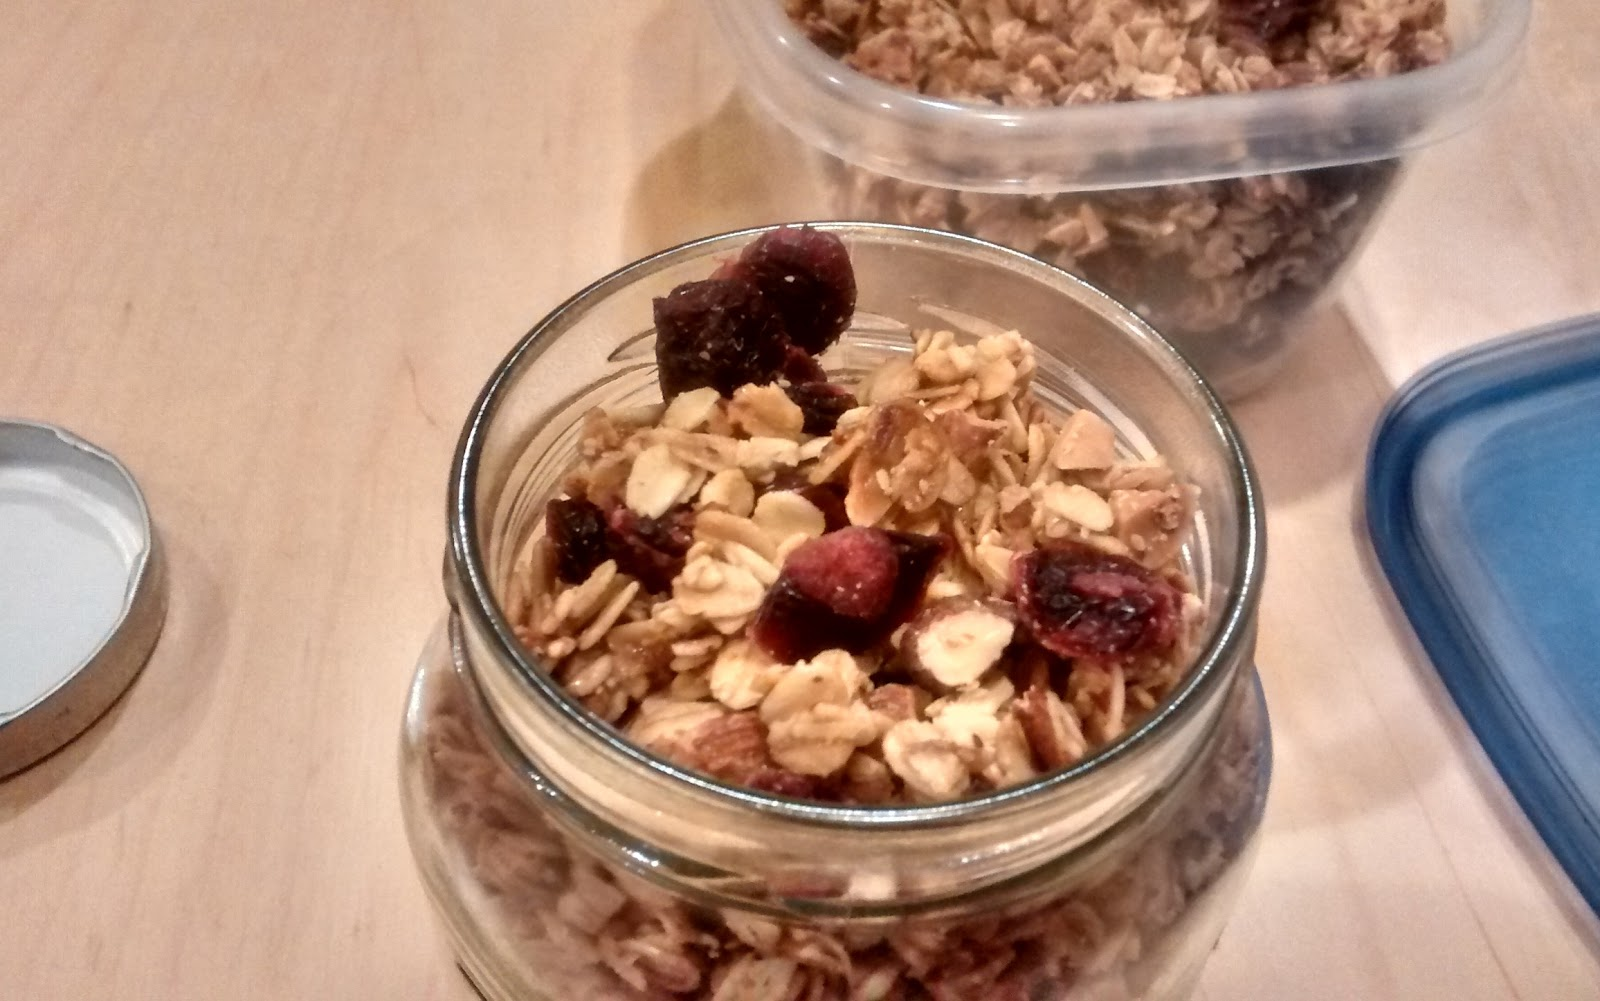 clumpalicious almond granola in a jar